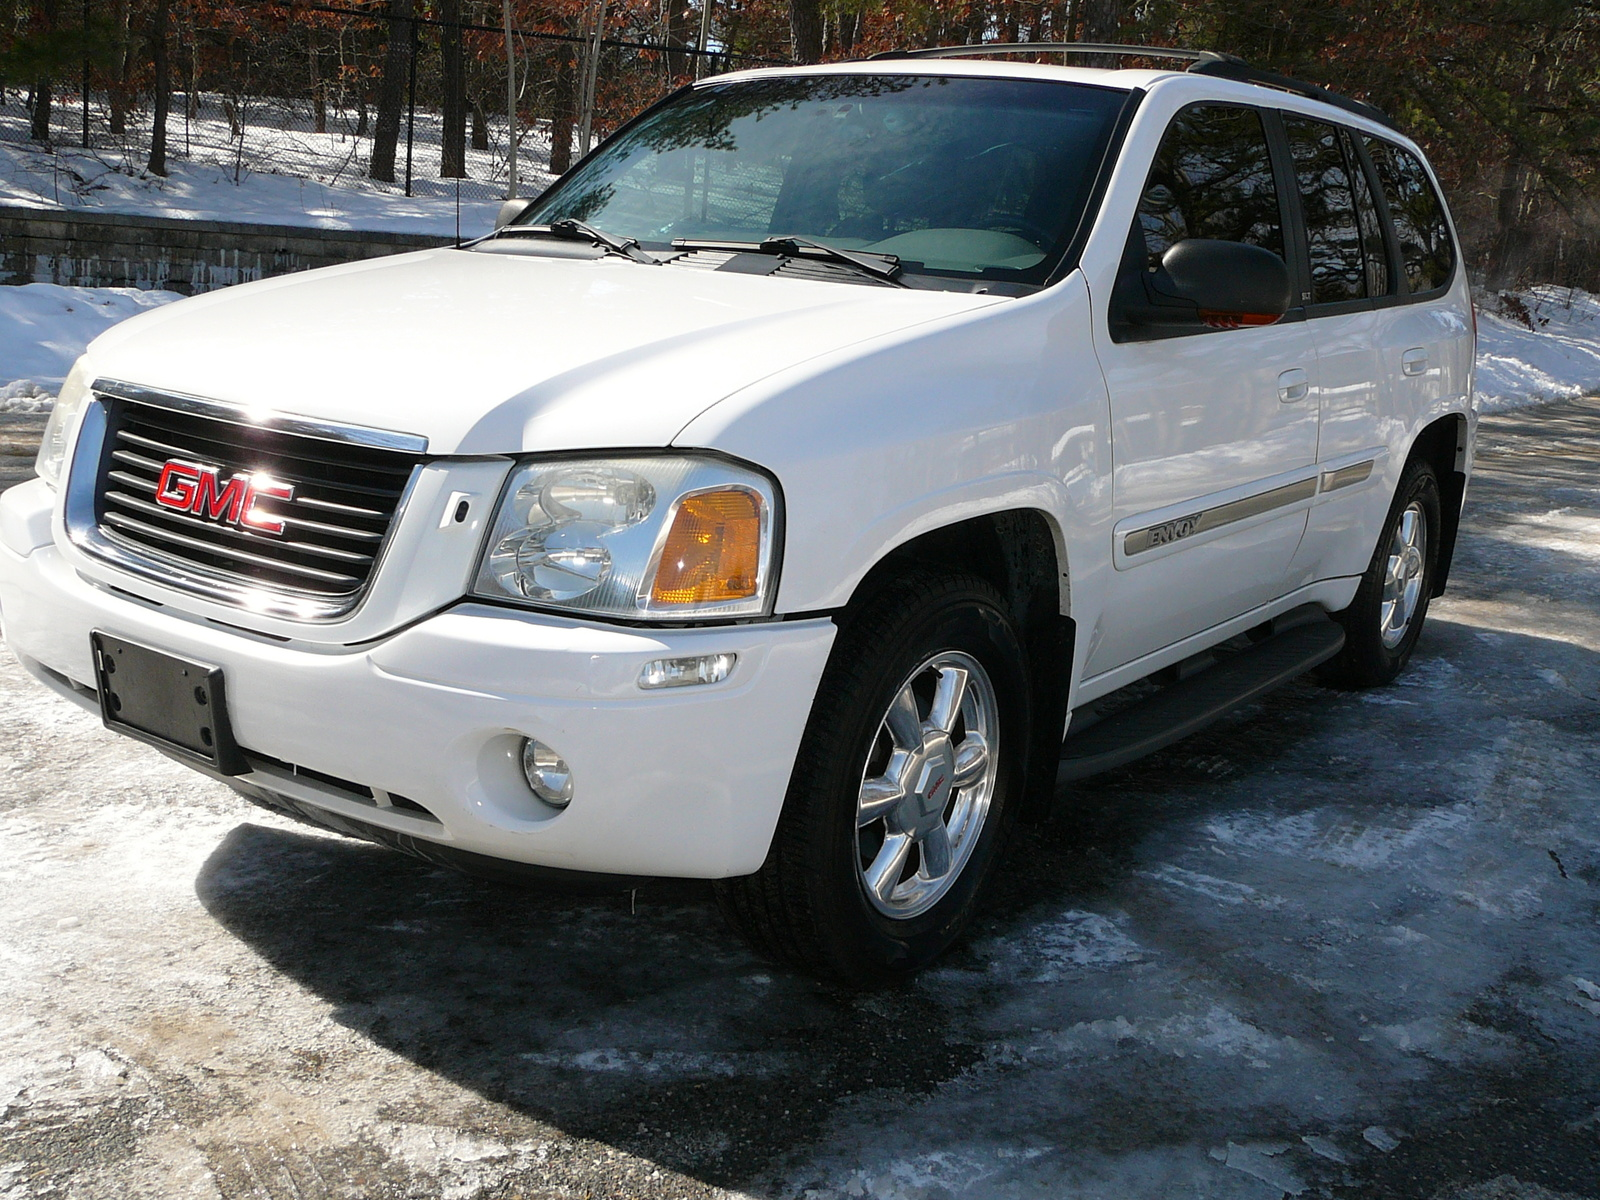 picture of 2003 gmc envoy 4 dr slt 4wd suv exterior. Black Bedroom Furniture Sets. Home Design Ideas